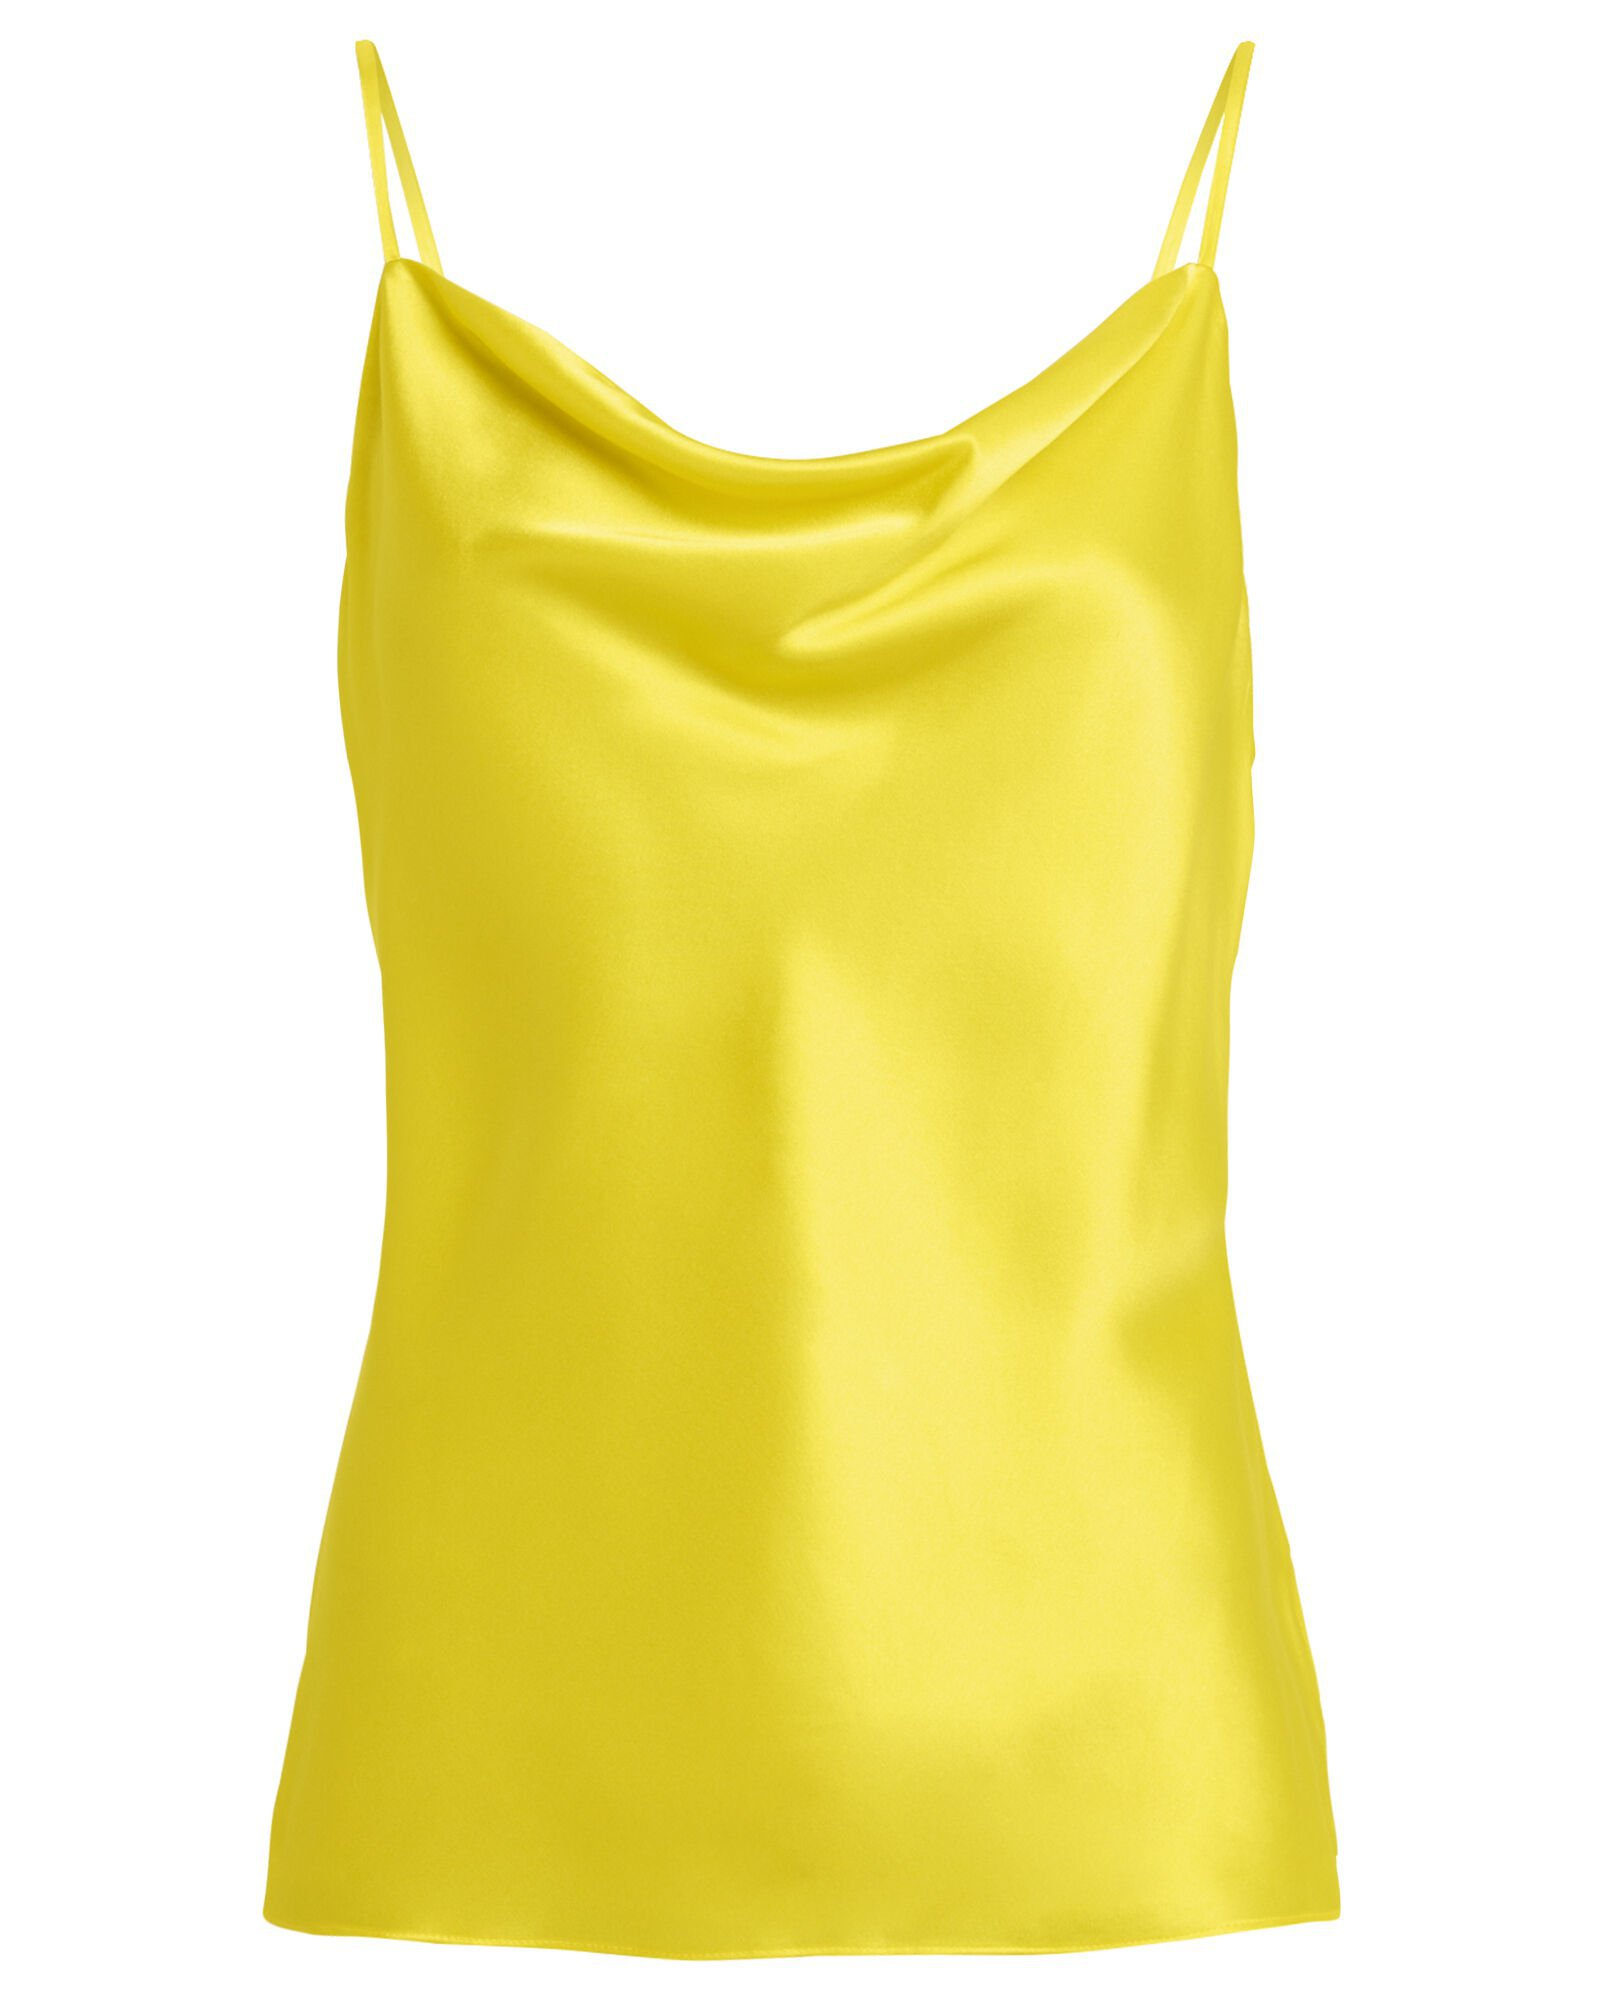 L'Agence | Kay Silk Cowl Neck Camisole